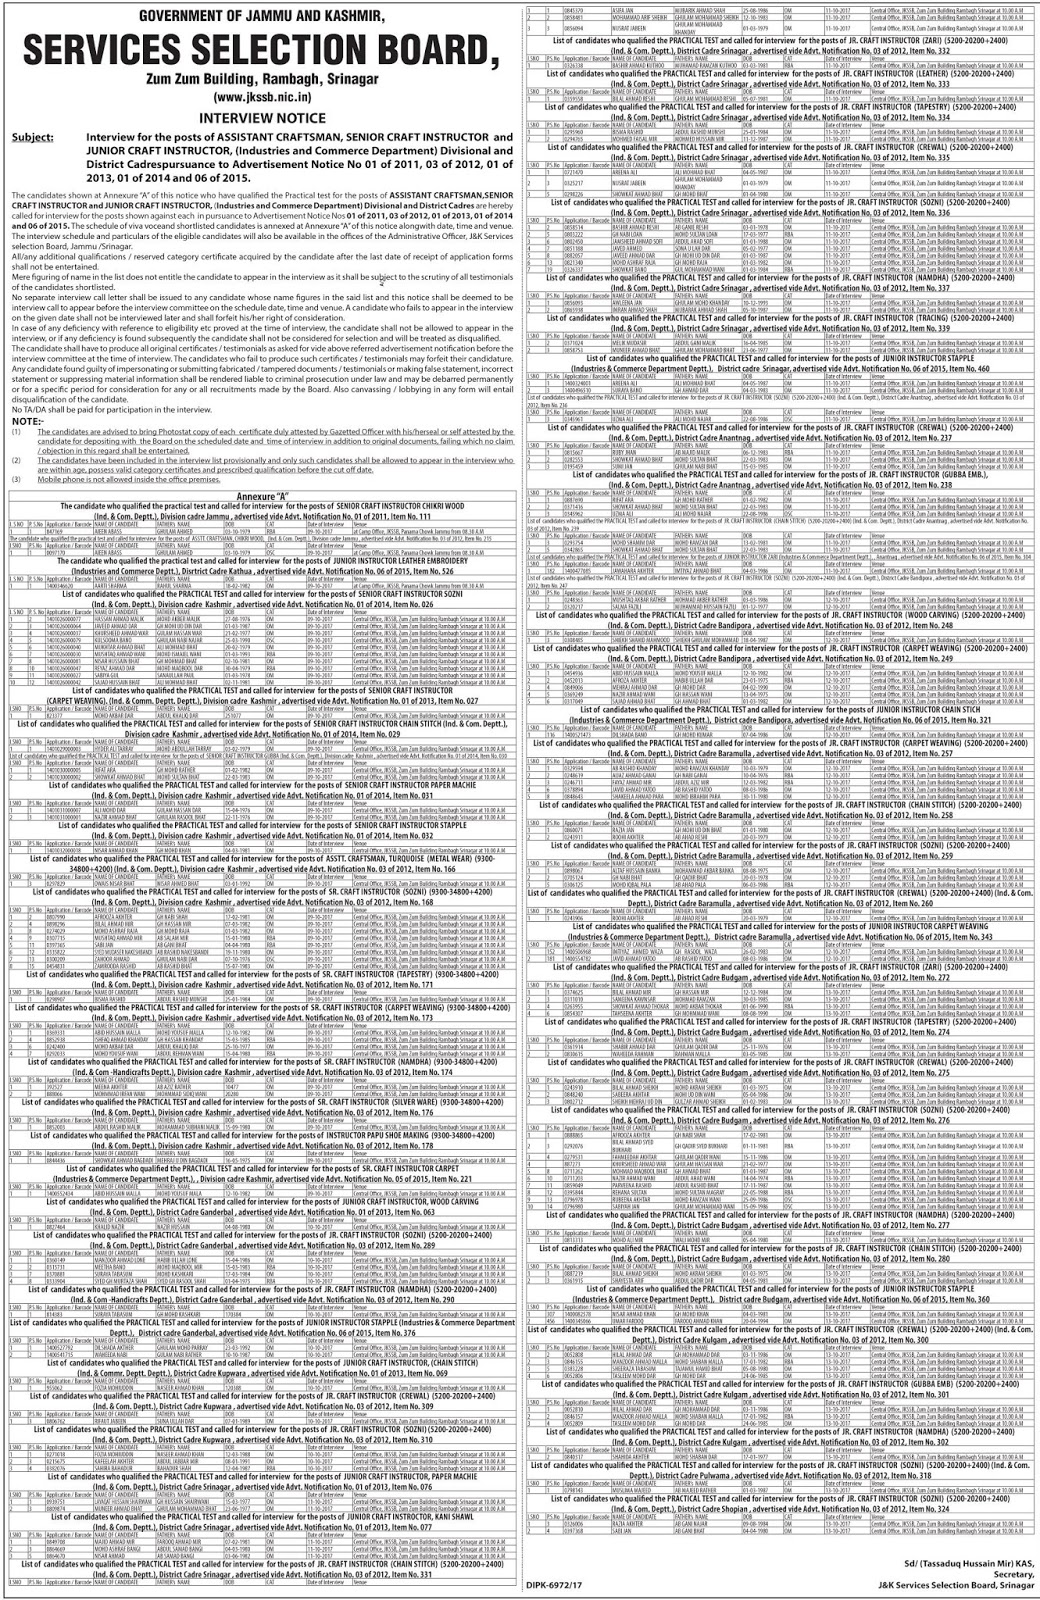 JKSSB Interview Notification for Assistant Craftsman, Sr. Craft Instructor & Jr. Craft Instructor Posts